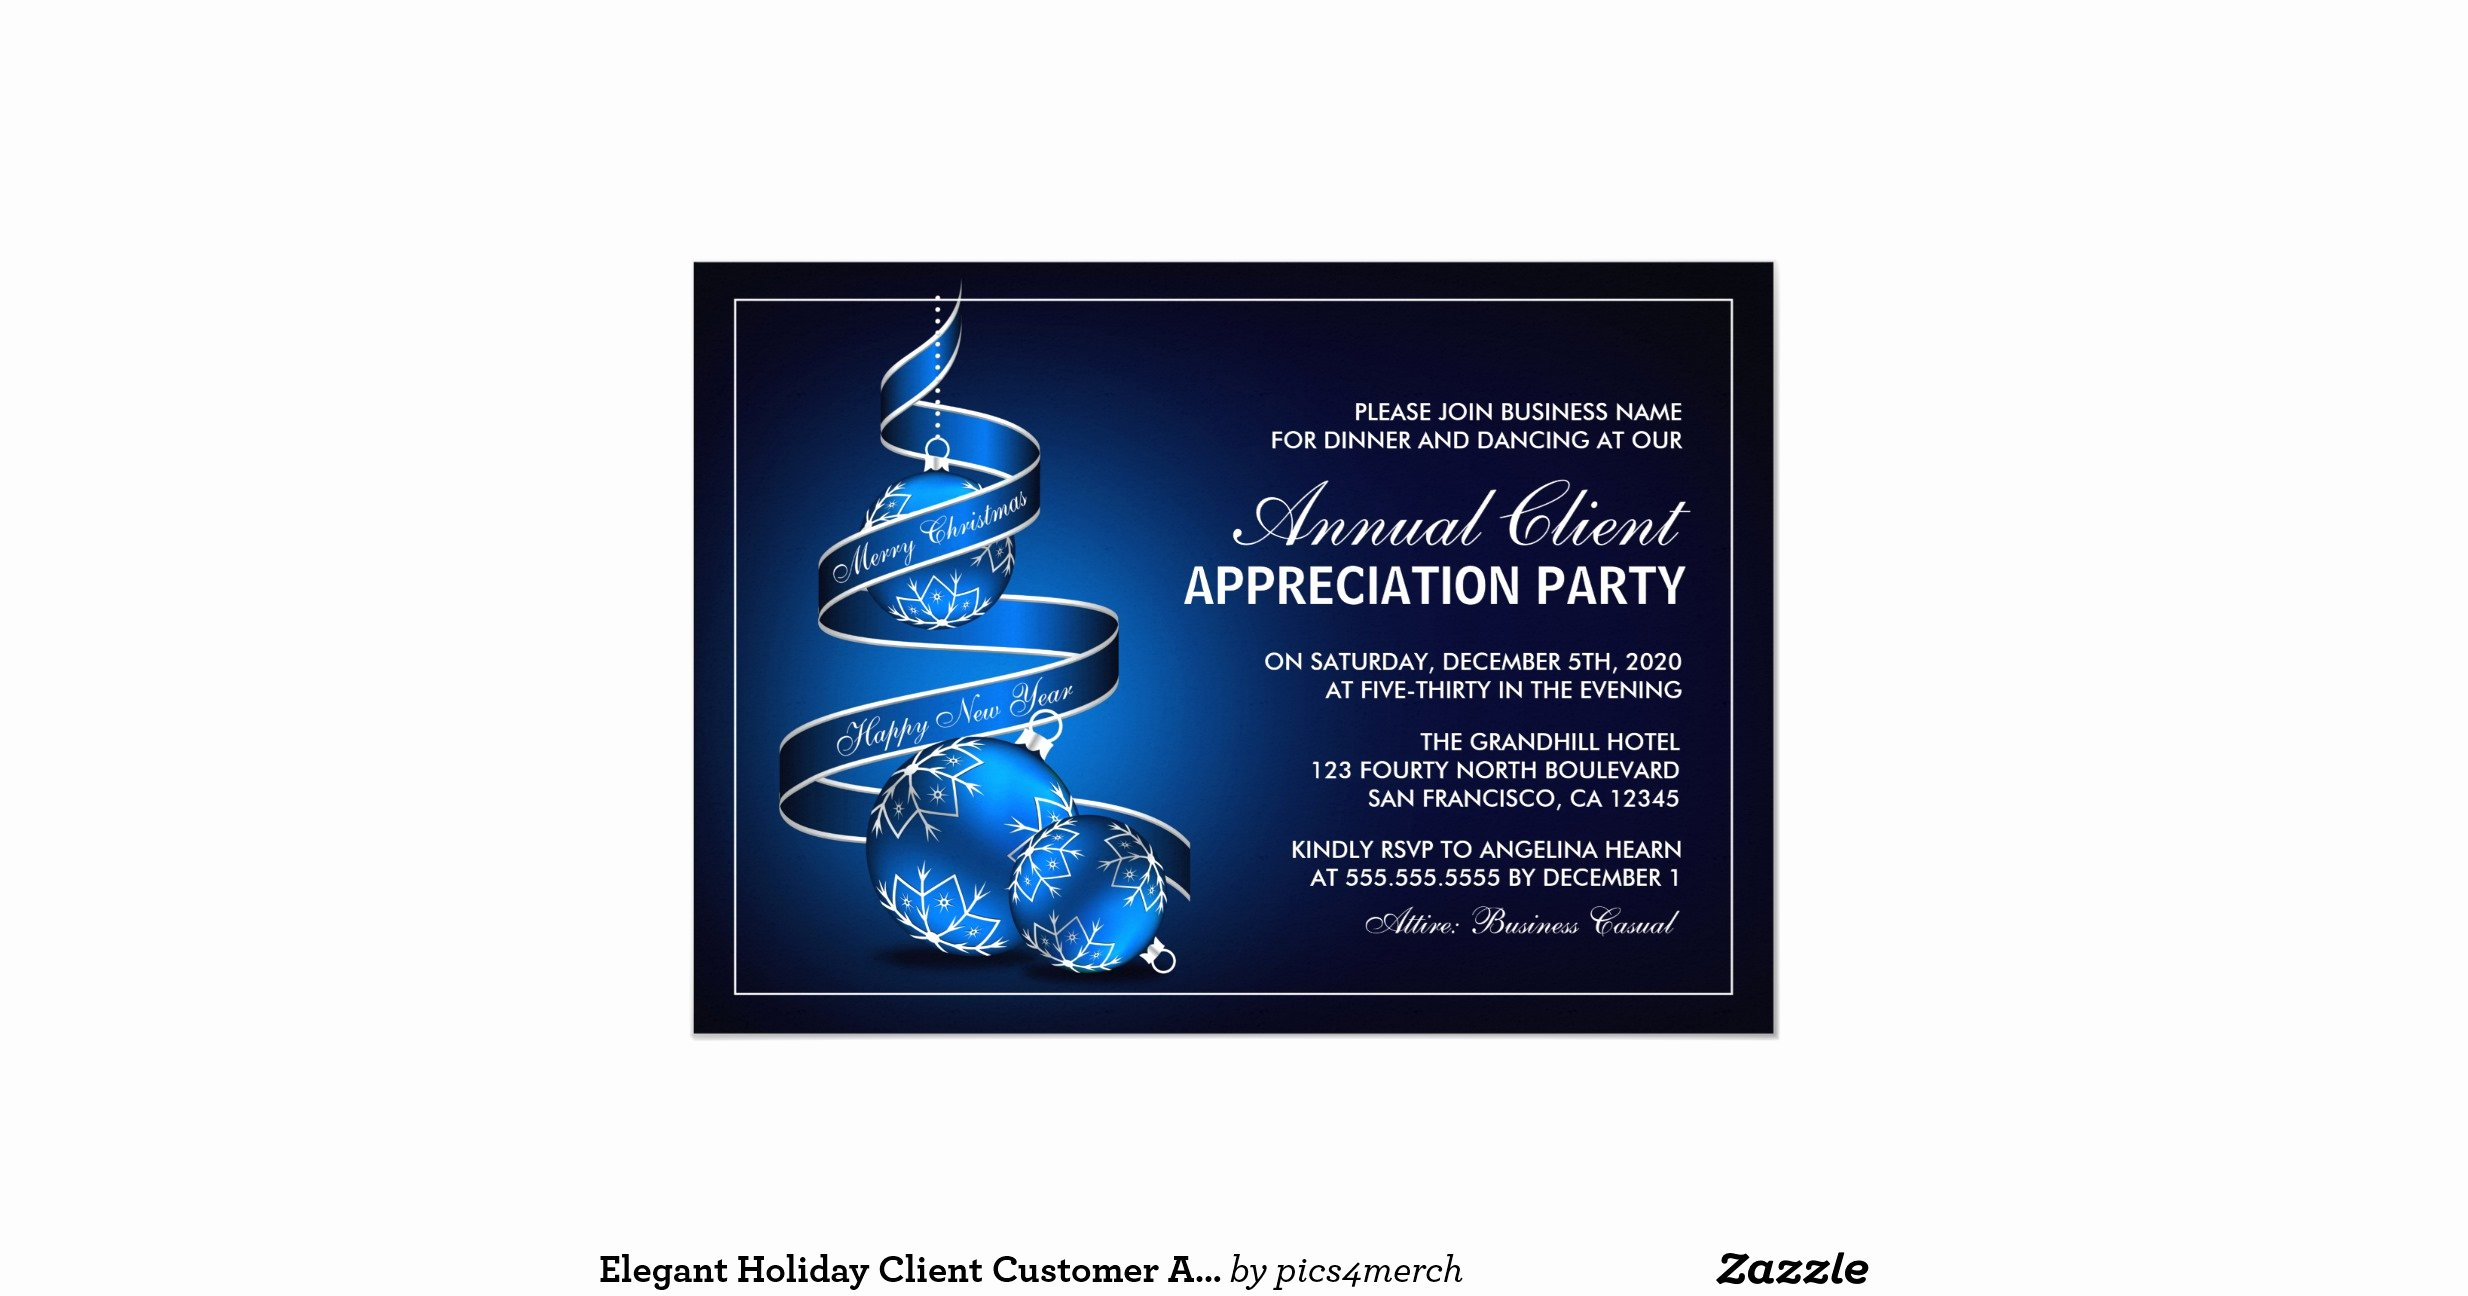 Client Appreciation Invitation Wording Fresh Elegant Holiday Client Customer Appreciation Party 5x7